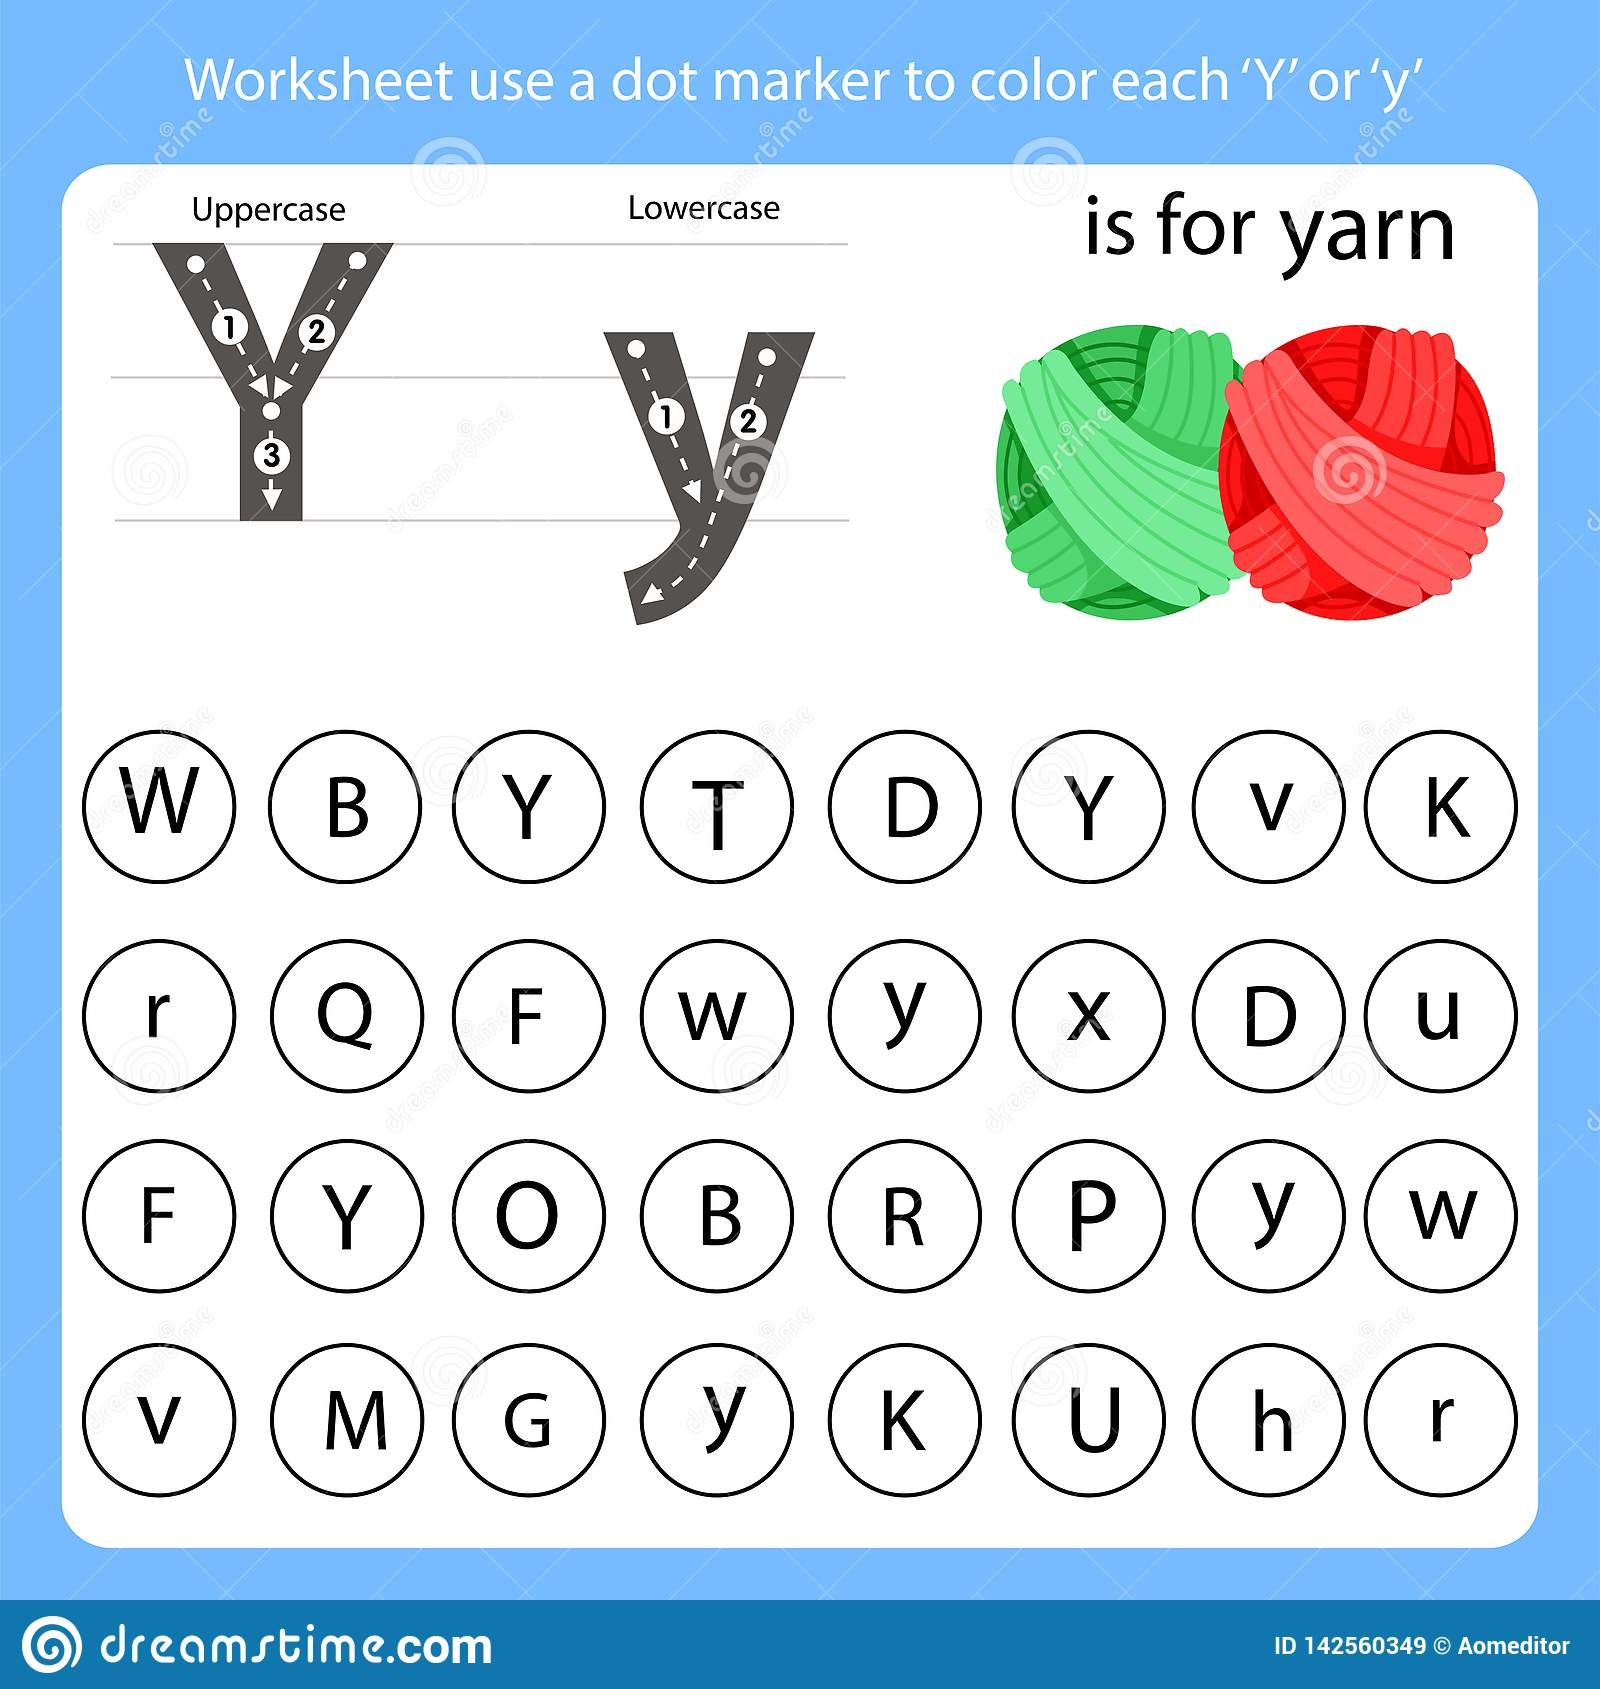 Worksheet Use A Dot Marker To Color Each Y Stock Vector